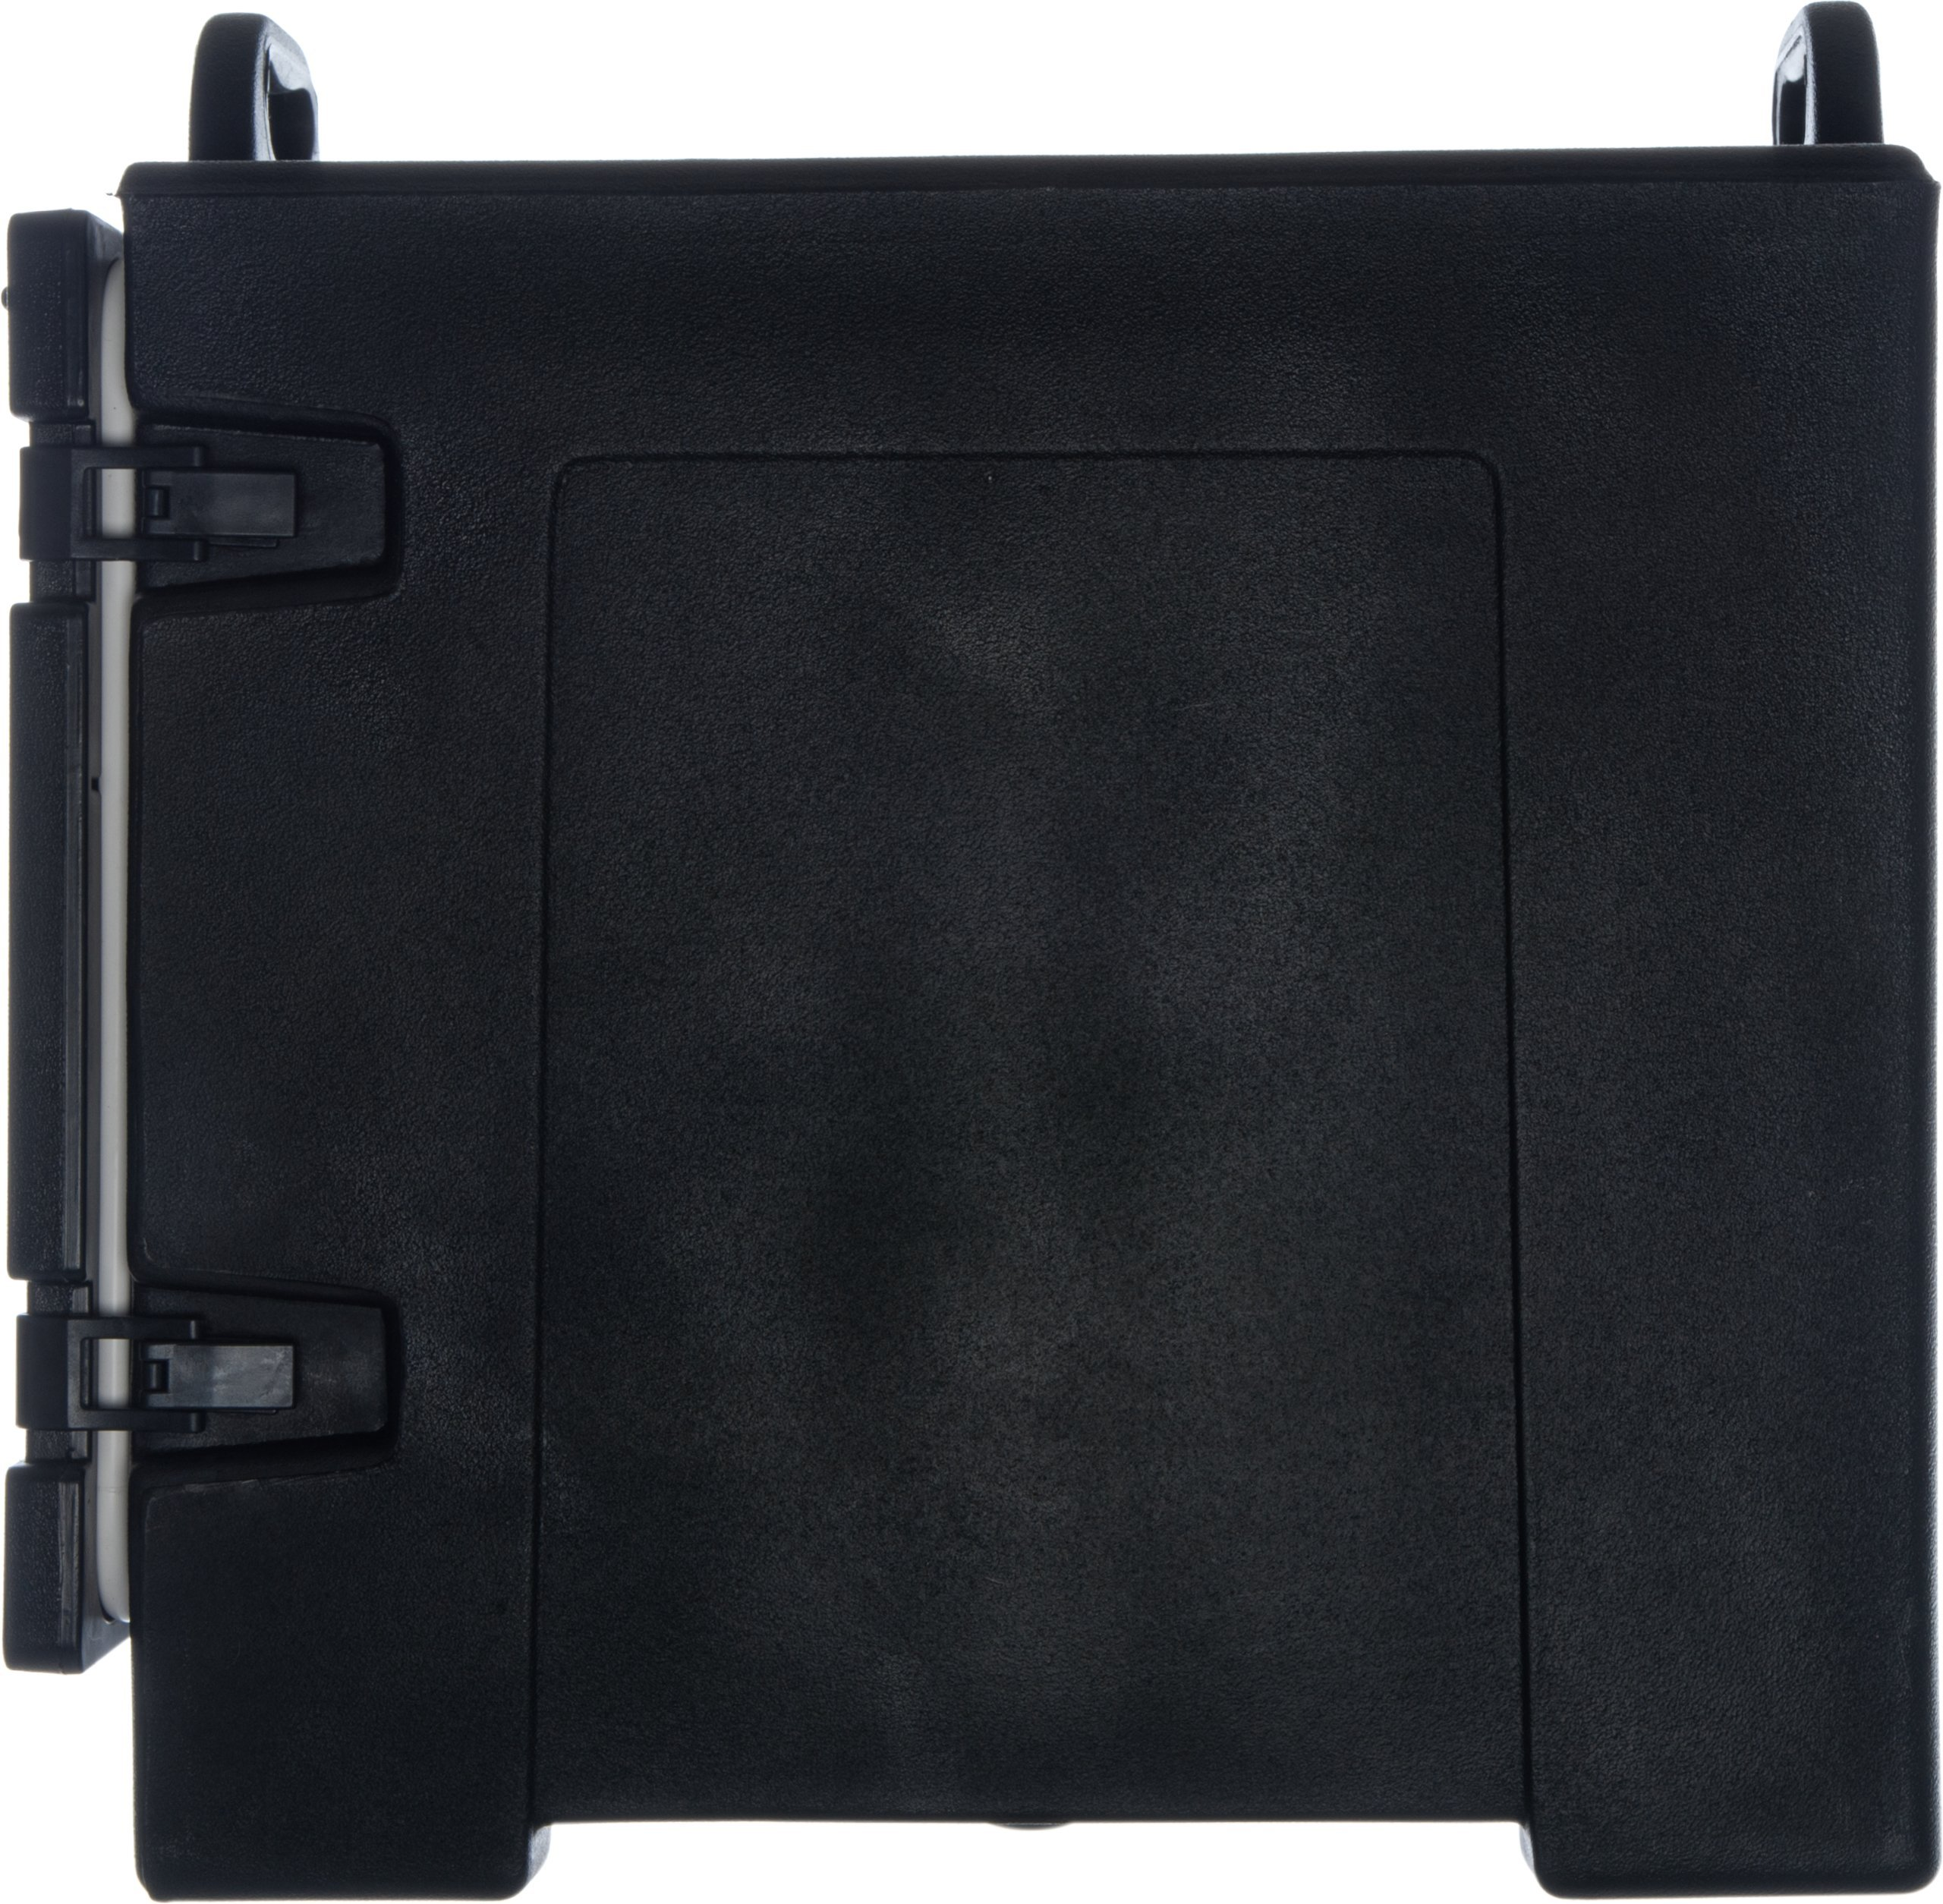 Carlisle PC300N03 Cateraide End-Loading Insulated Food Pan Carrier, 5 Pan Capacity, Black by Carlisle (Image #5)